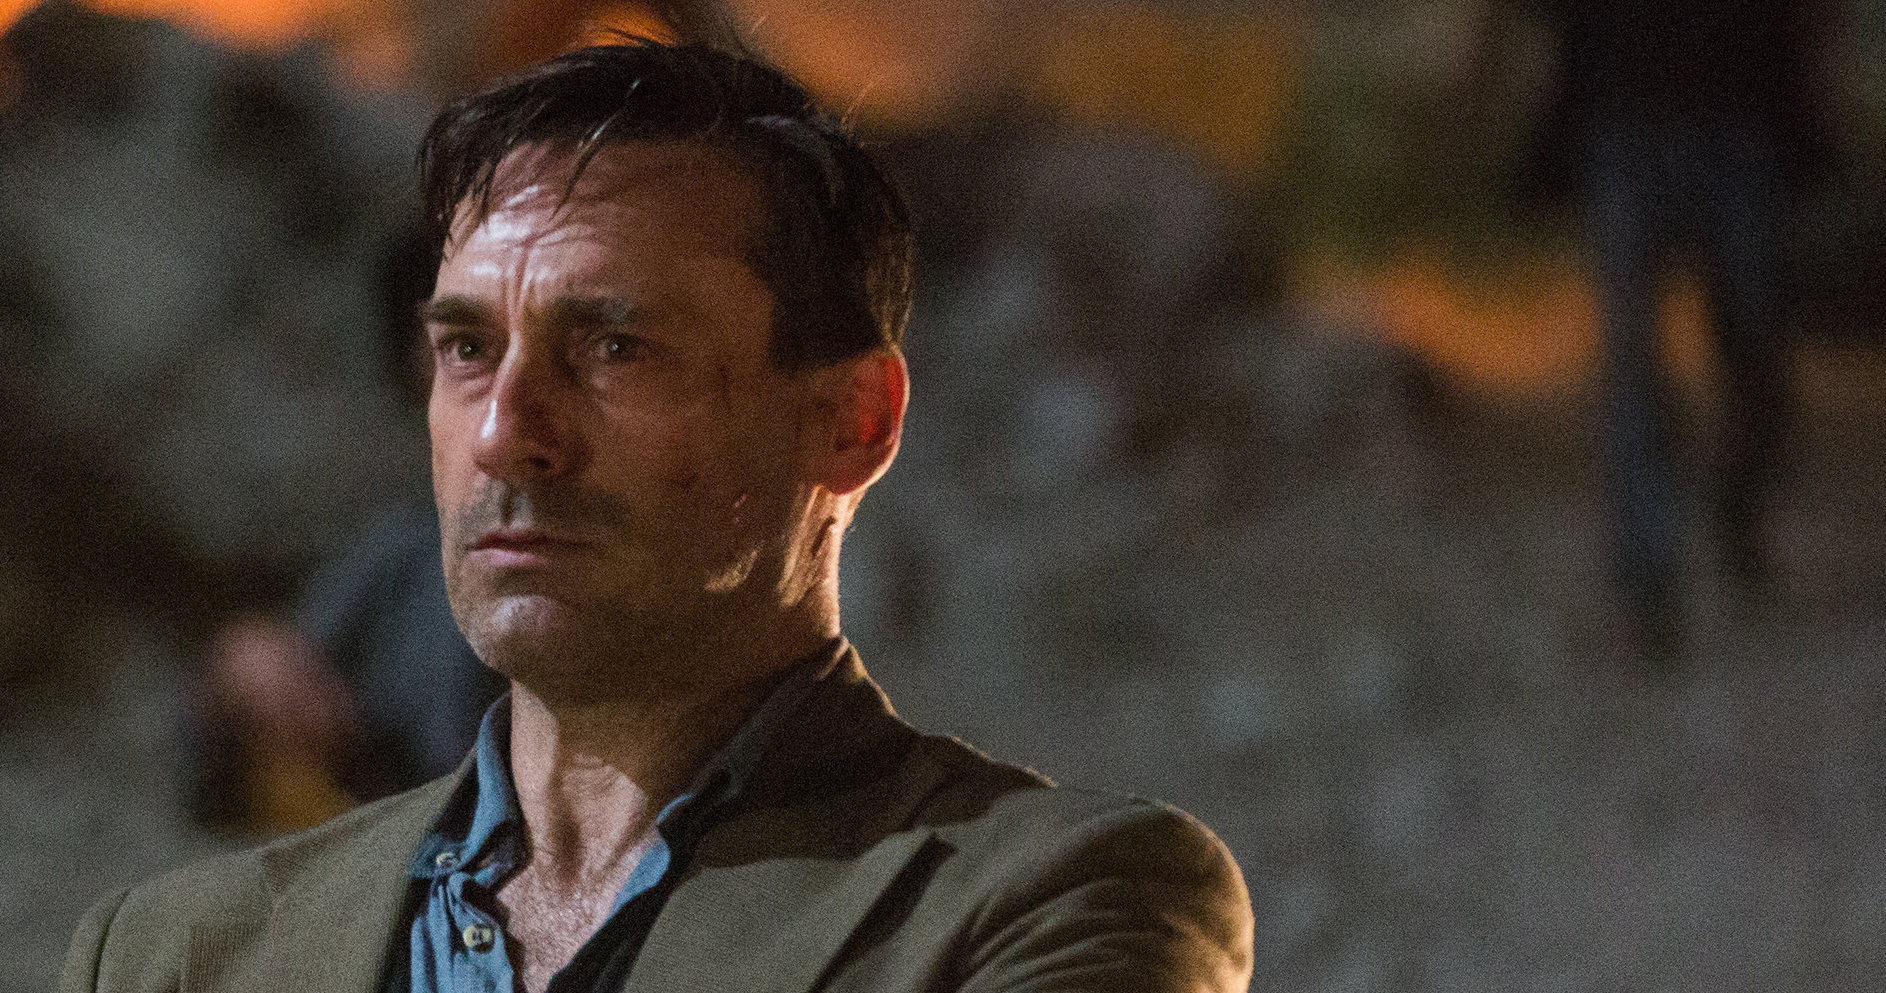 Jon Hamm is perfectly cast as a troubled, tough-talking alcoholic